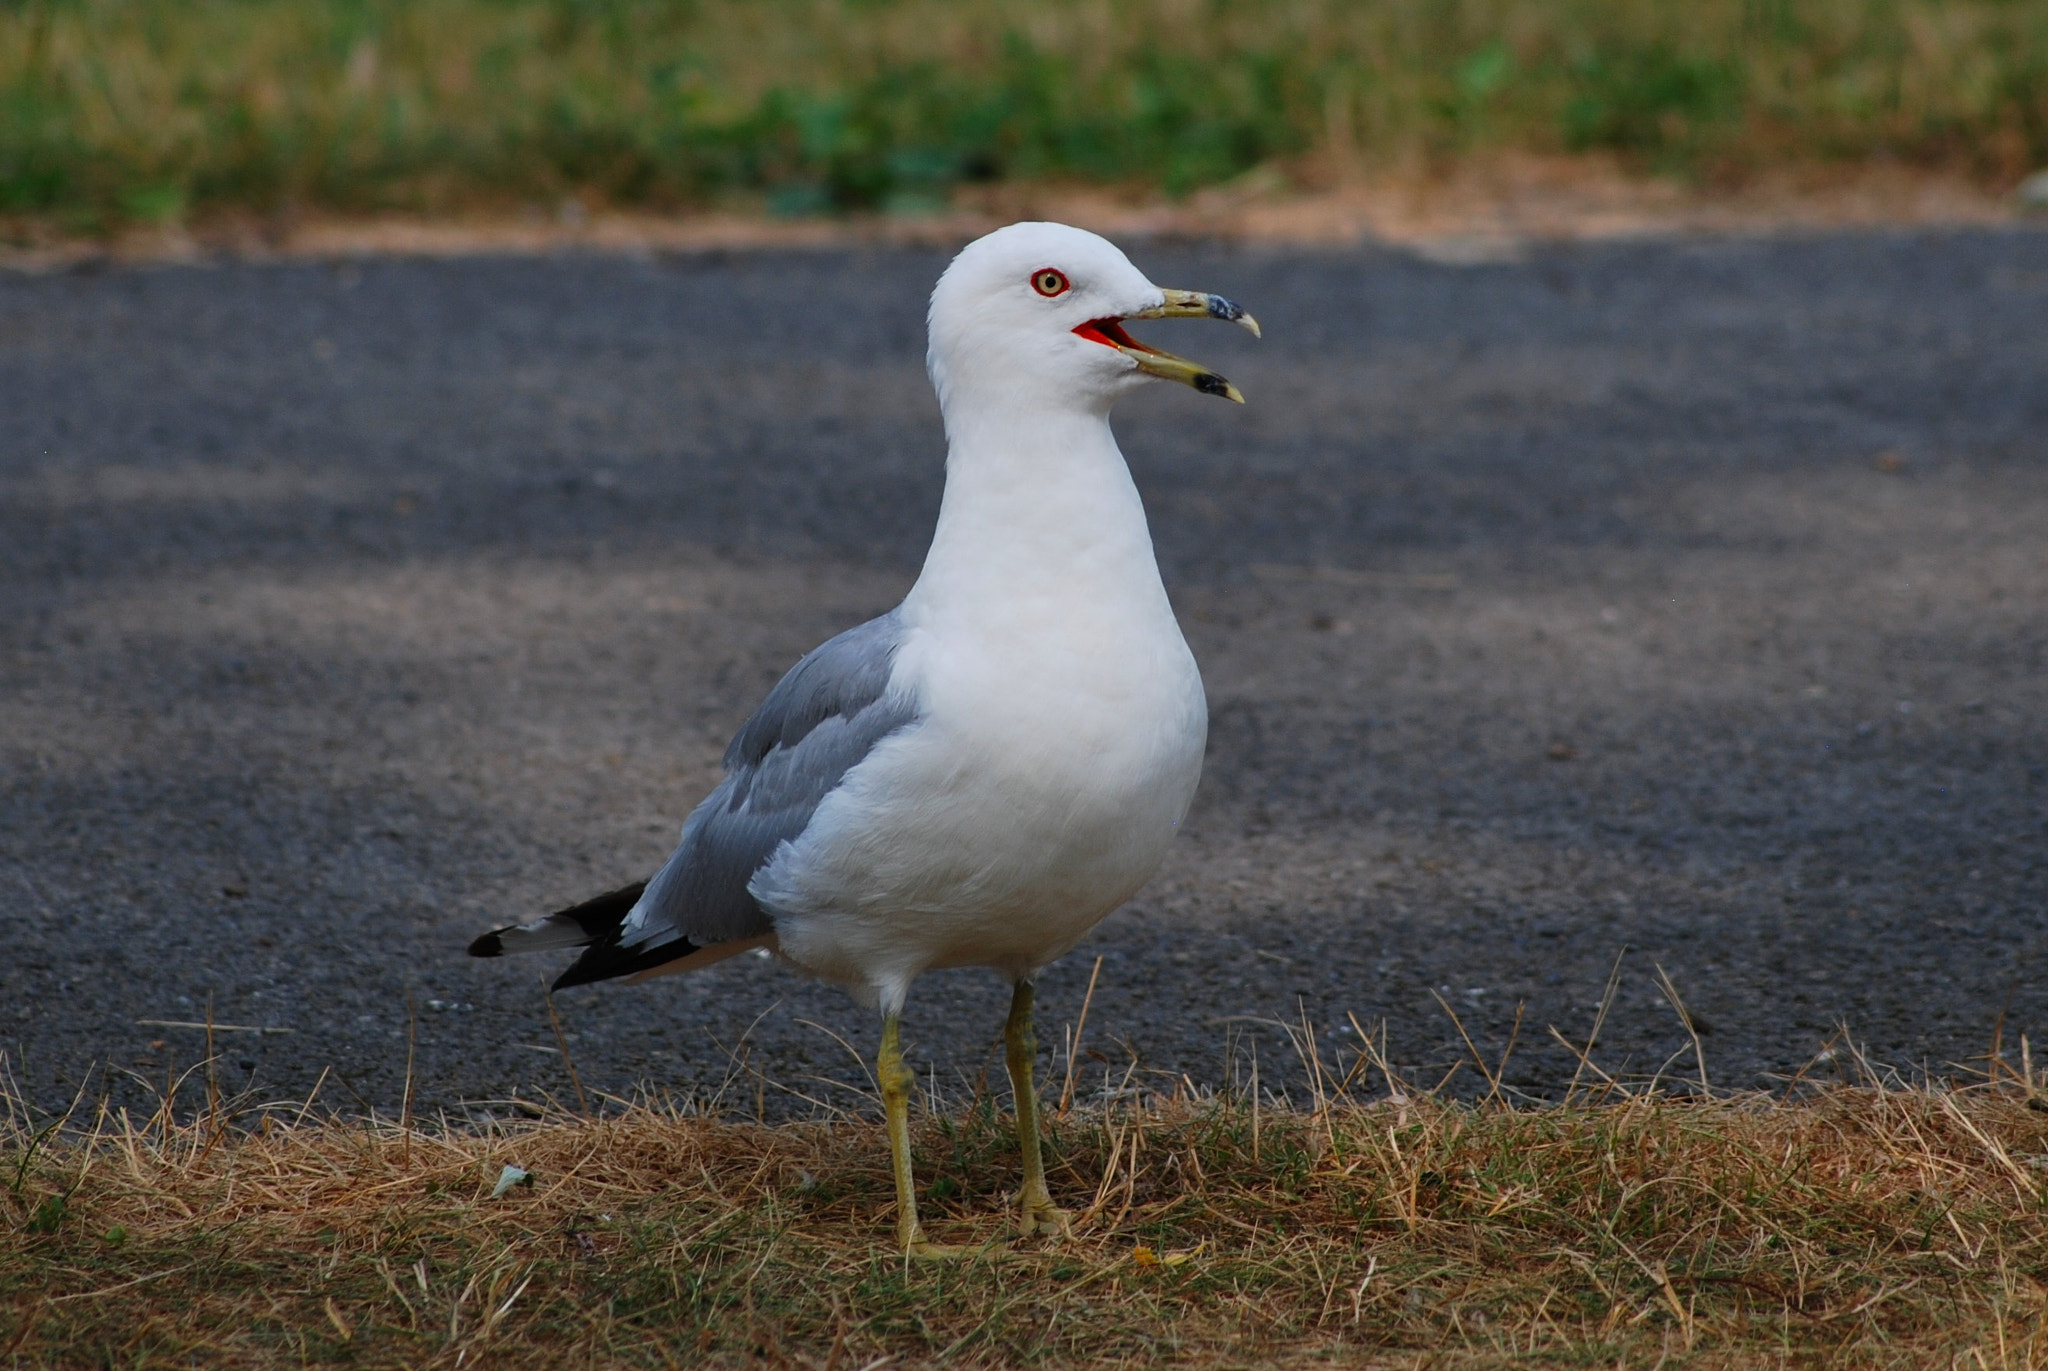 Photograph Why did the Seagull cross the Road? by Matt Becker on 500px